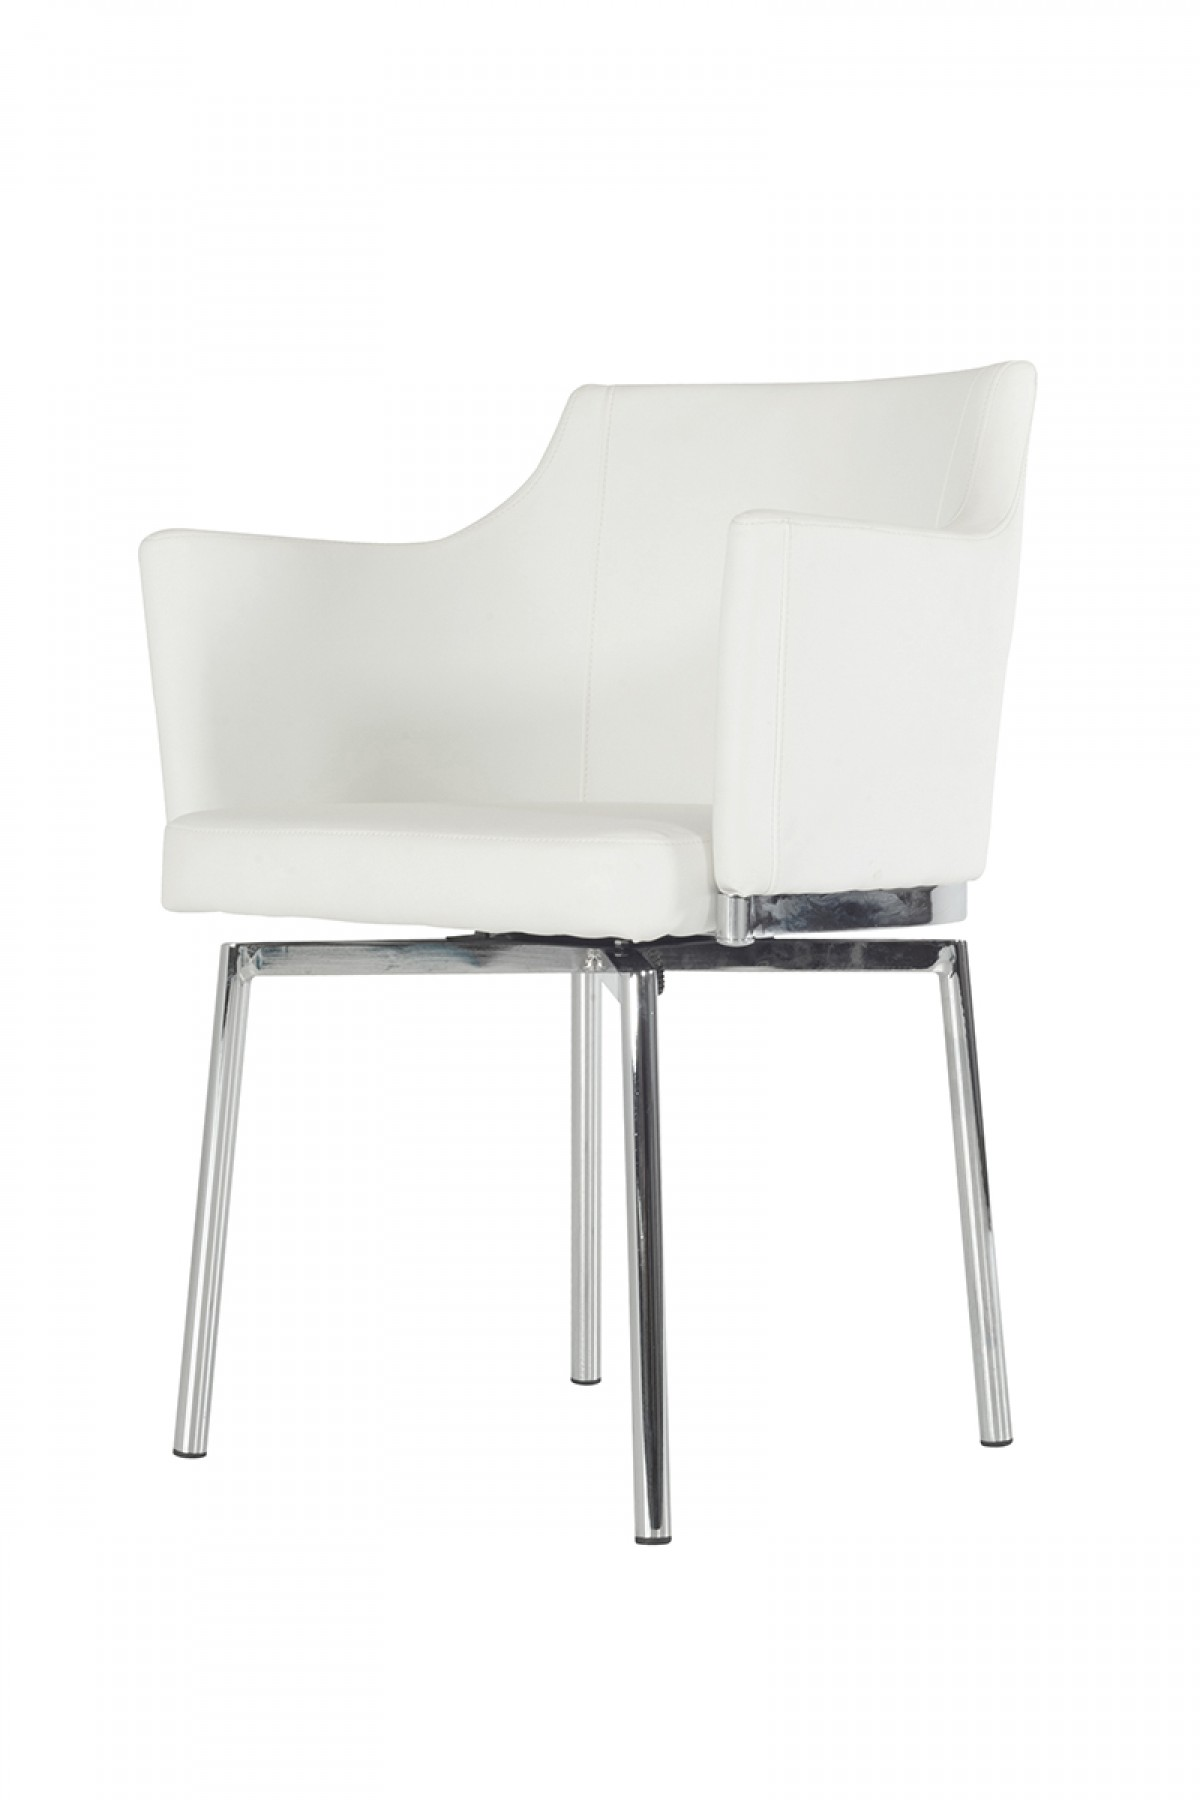 Modern White Dining Chair Modrest Kaweah Modern White Dining Chair Dining Chairs